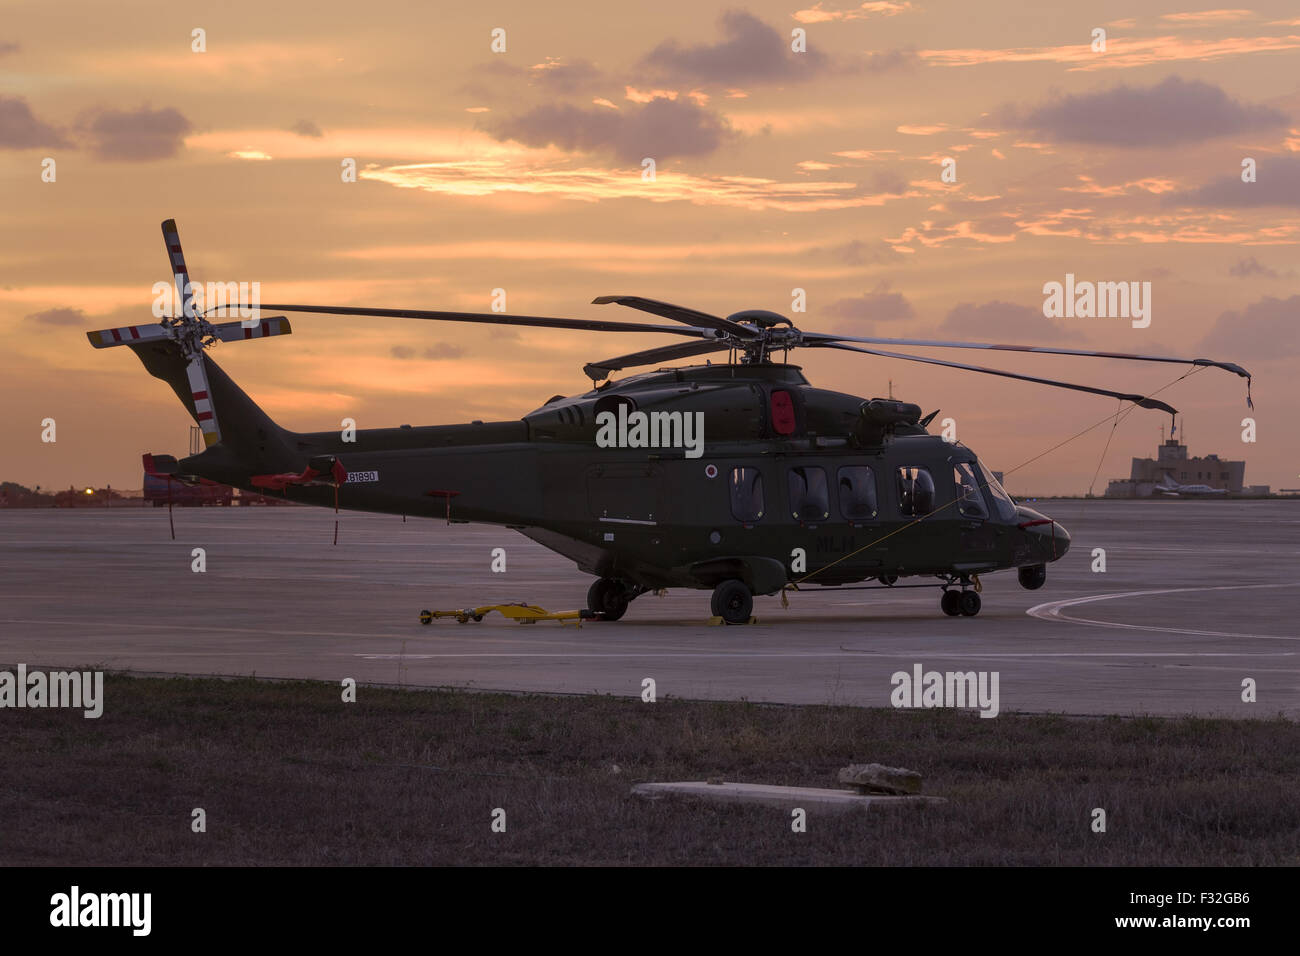 Italian Agusta Westland AW-189 parked in apron 4, ready for the airshow in the sunrise. - Stock Image